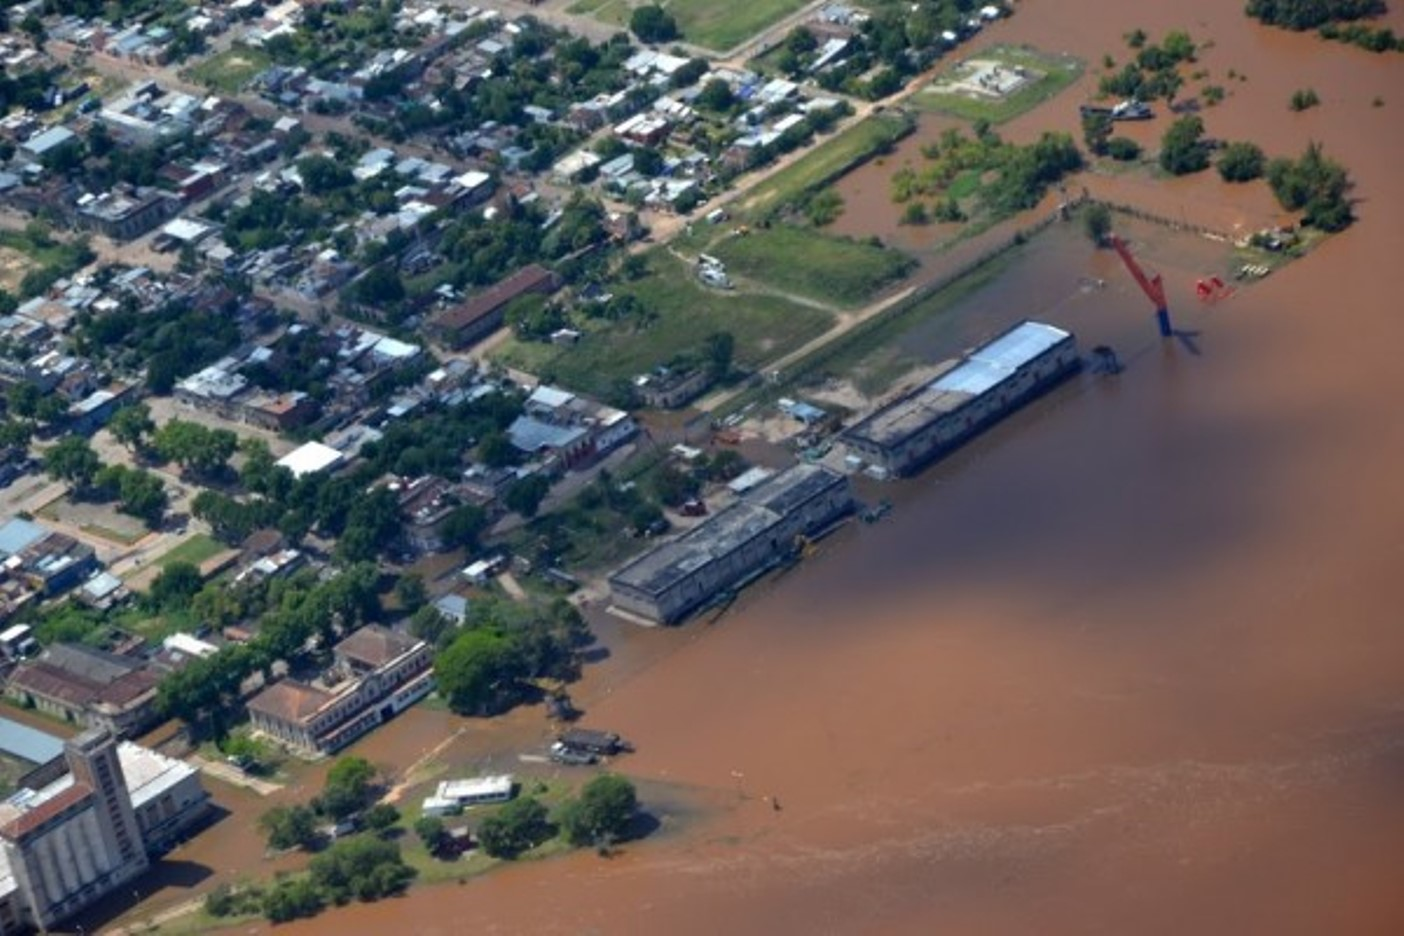 Floods in Uruguay, December 2015. Photo courtesy of Sistema Nacional de Emergencias